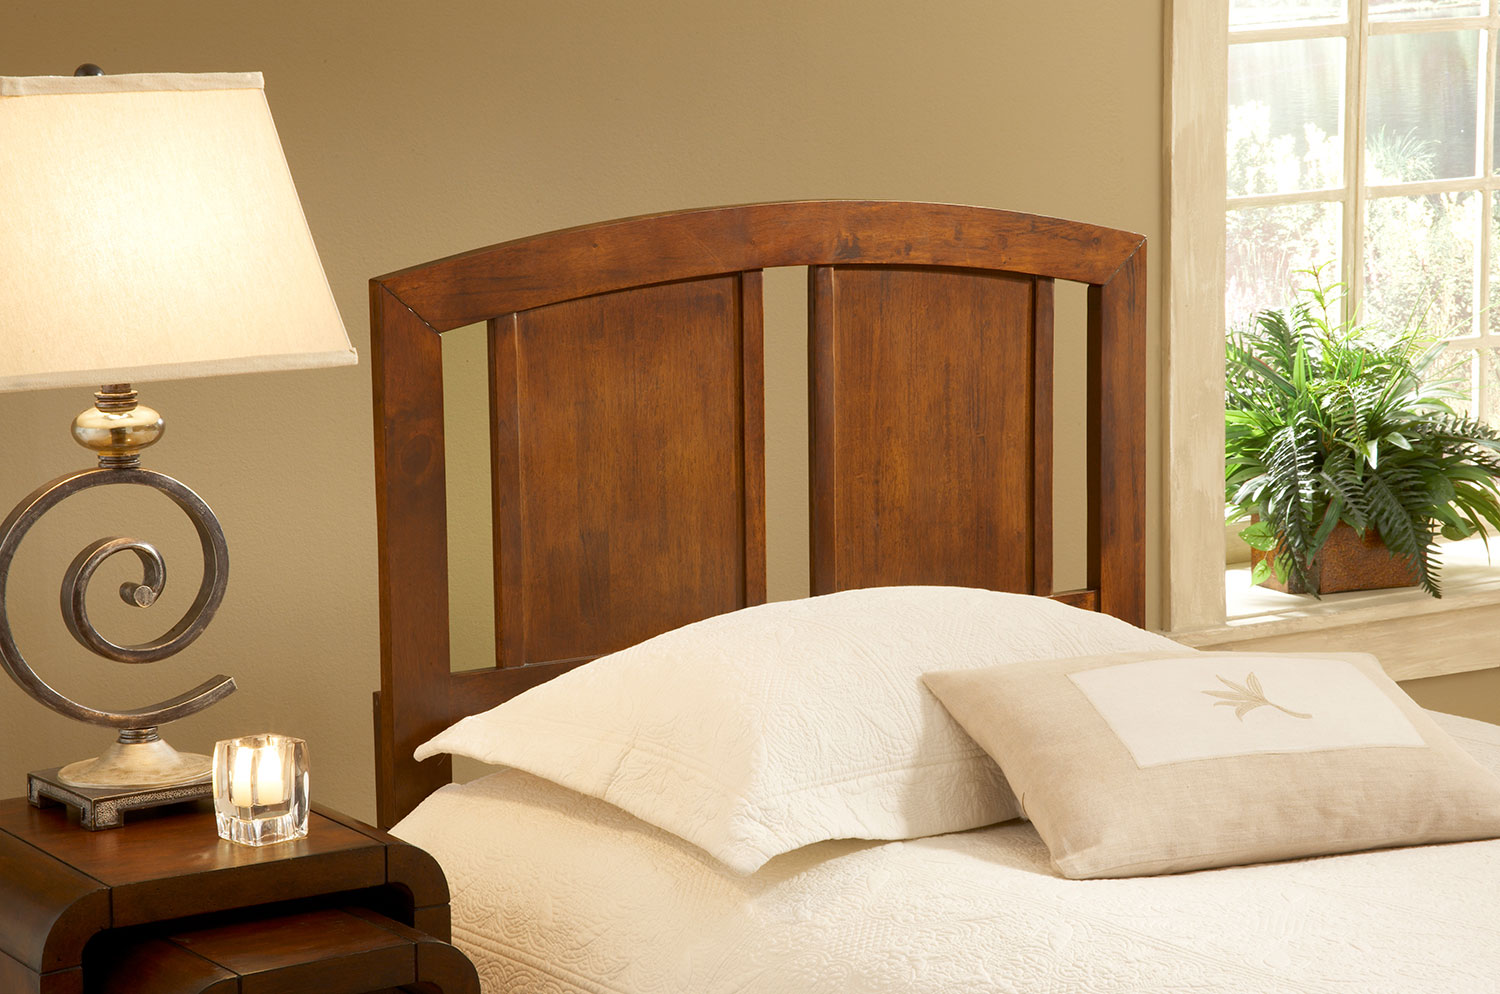 Bedroom Furniture - Steph Full/Queen Headboard - Walnut